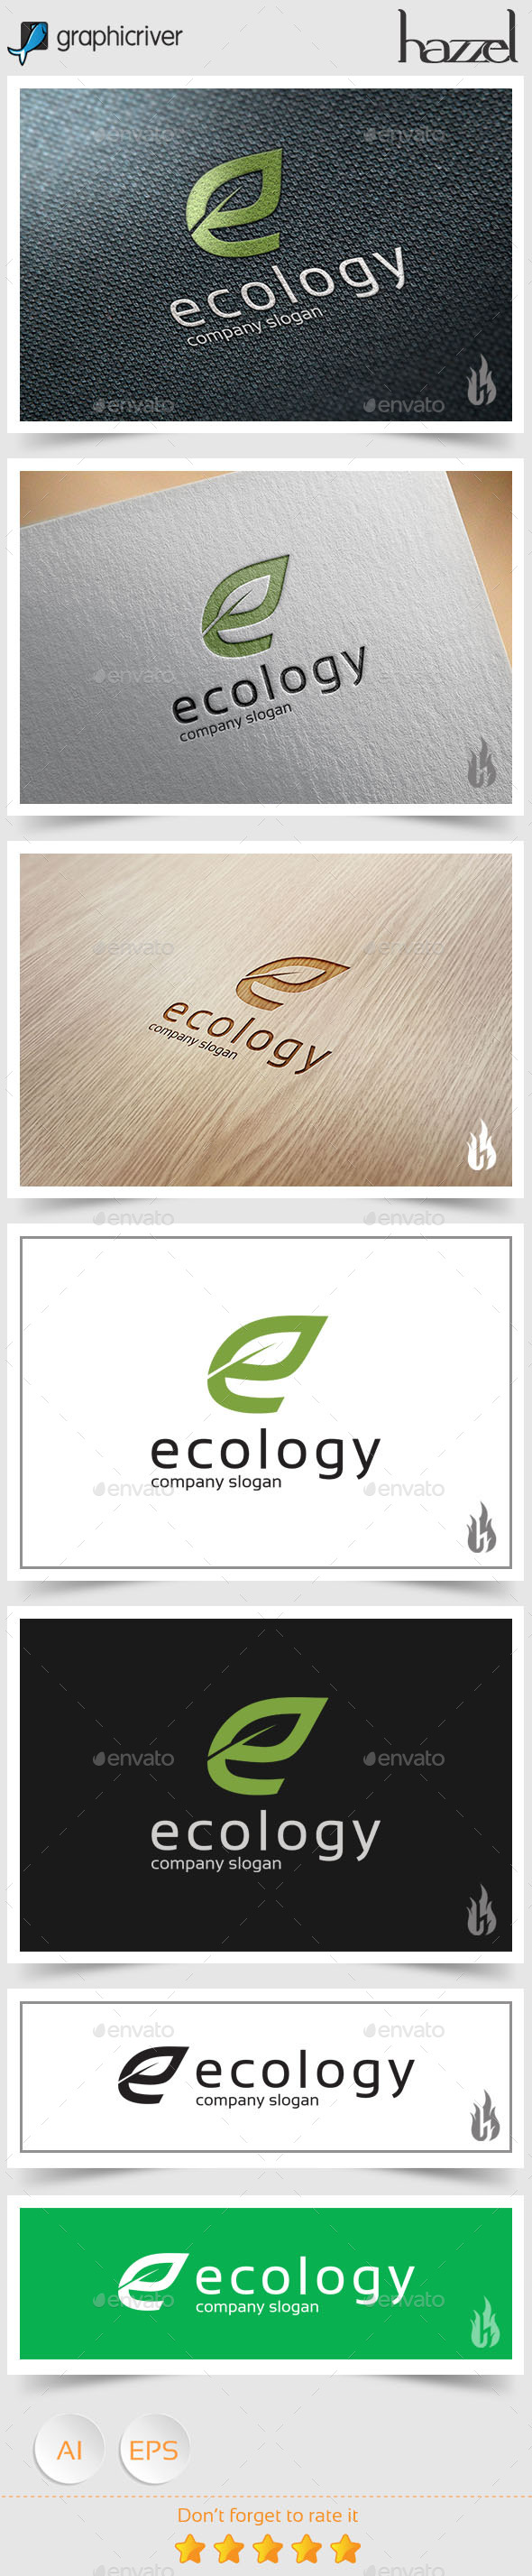 GraphicRiver Ecology Logo 8987984